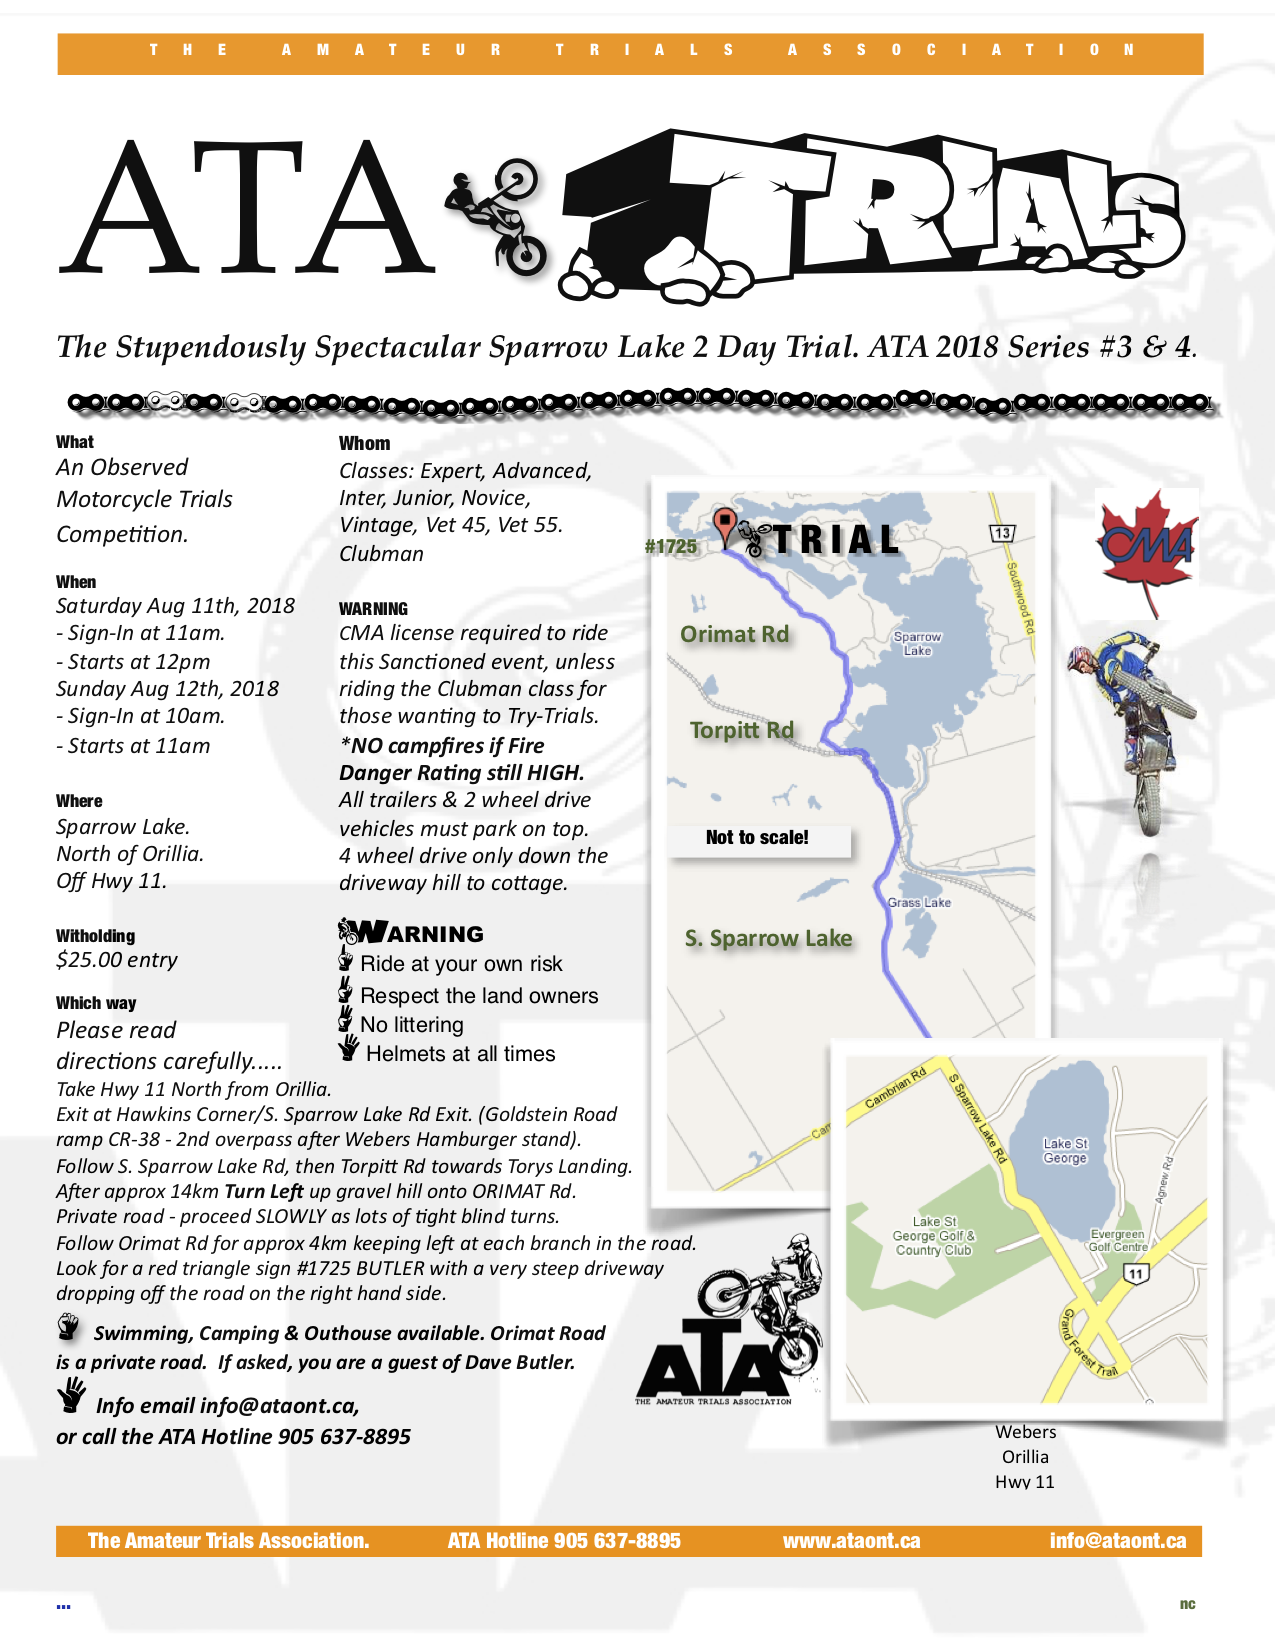 ATA SPARROW LAKE 2 DAY TRIAL – AUGUST 11TH & 12TH, 2018